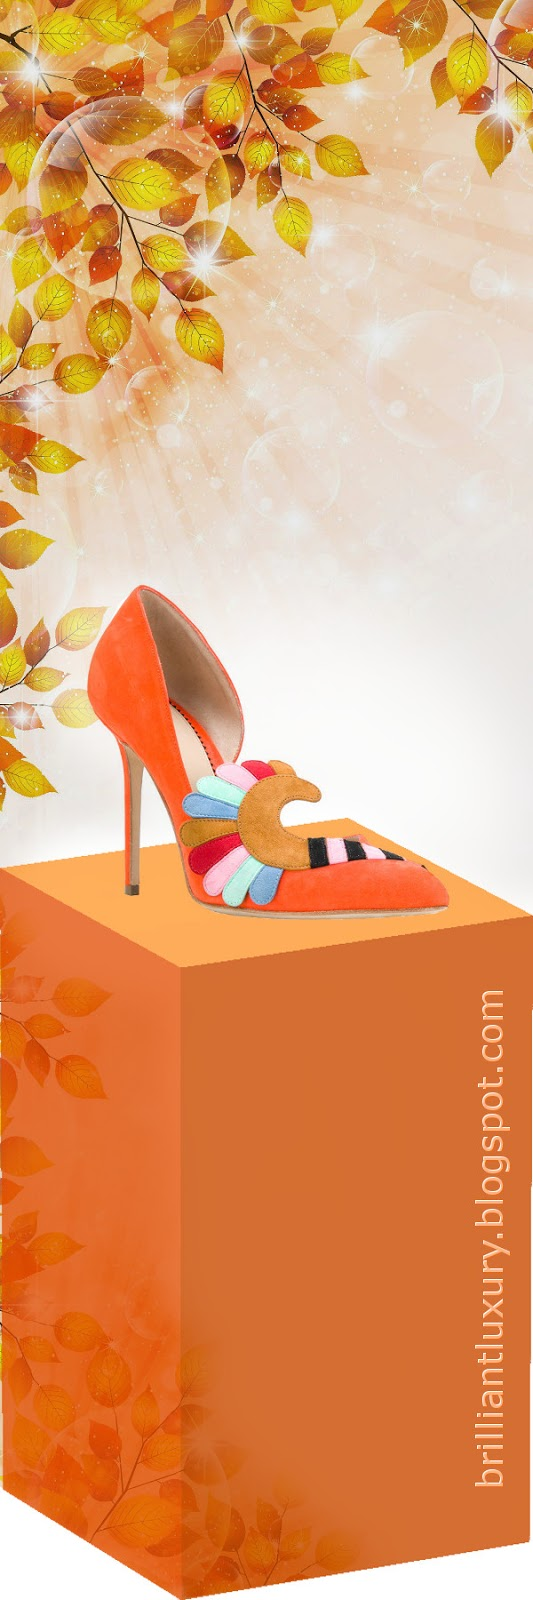 Brilliant Luxury ♦ Paula Cademartori Iris classic pumps #orange